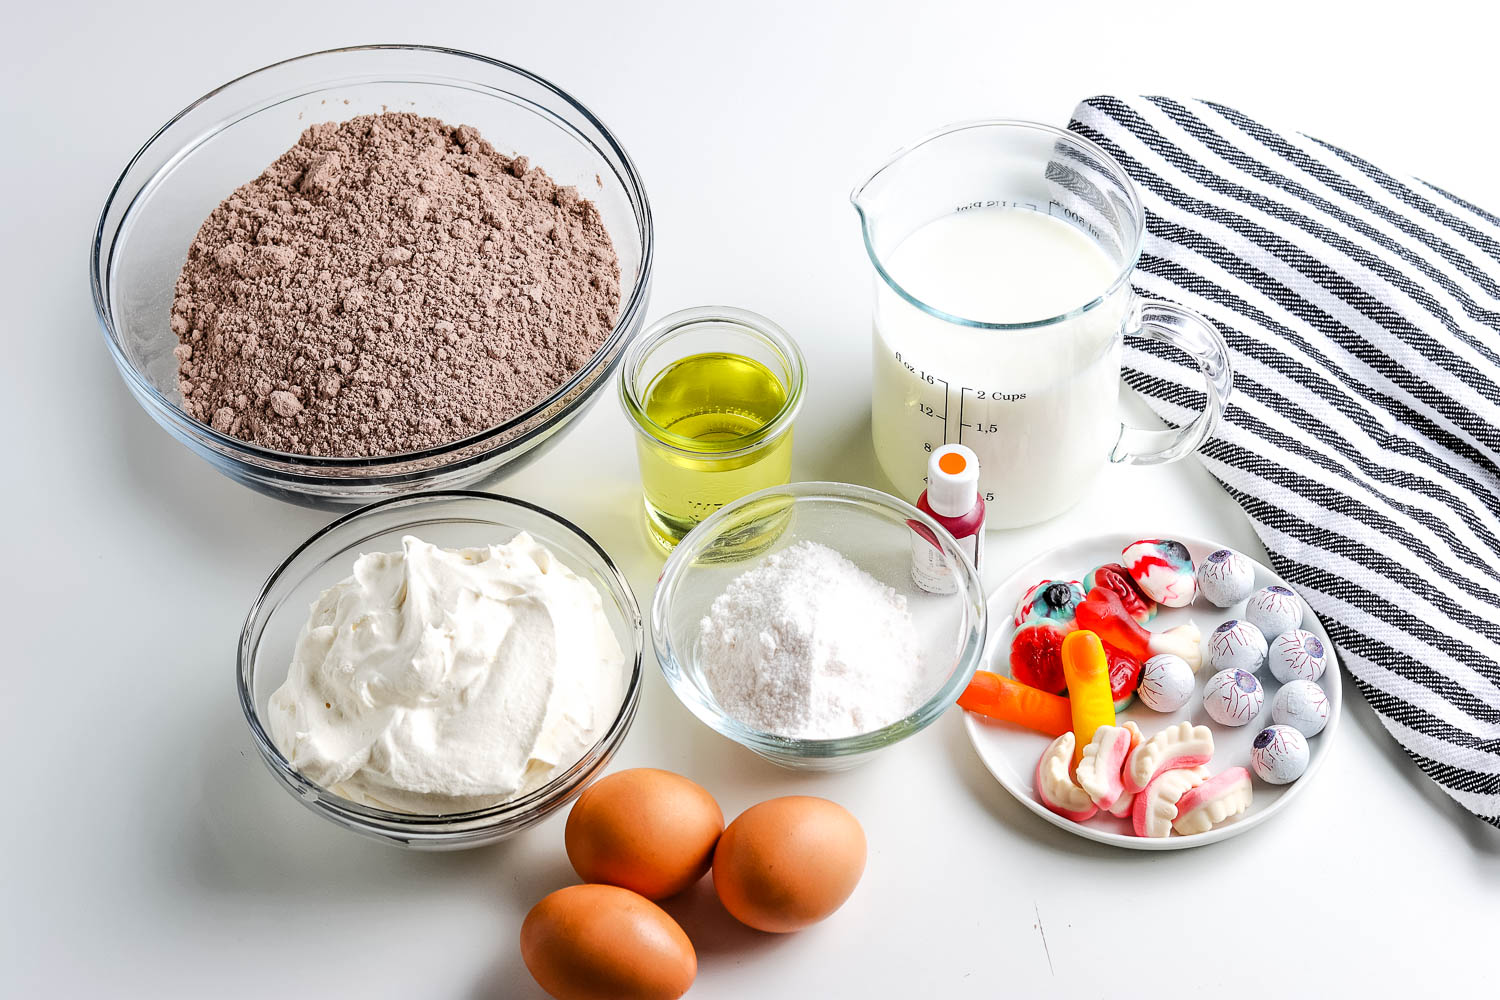 All of the ingredients needed to make this Chocolate Trifle recipe.